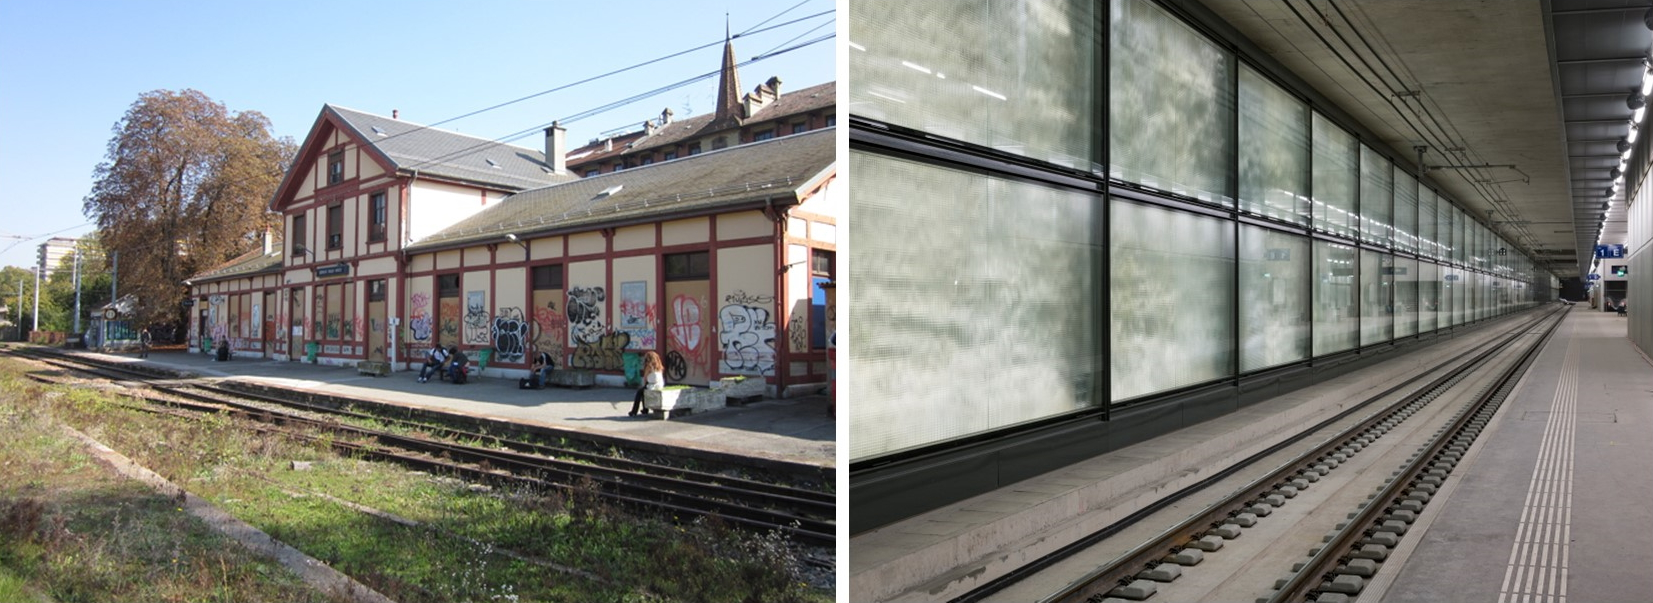 Before. How Eaux Vives station used to look before the transformation